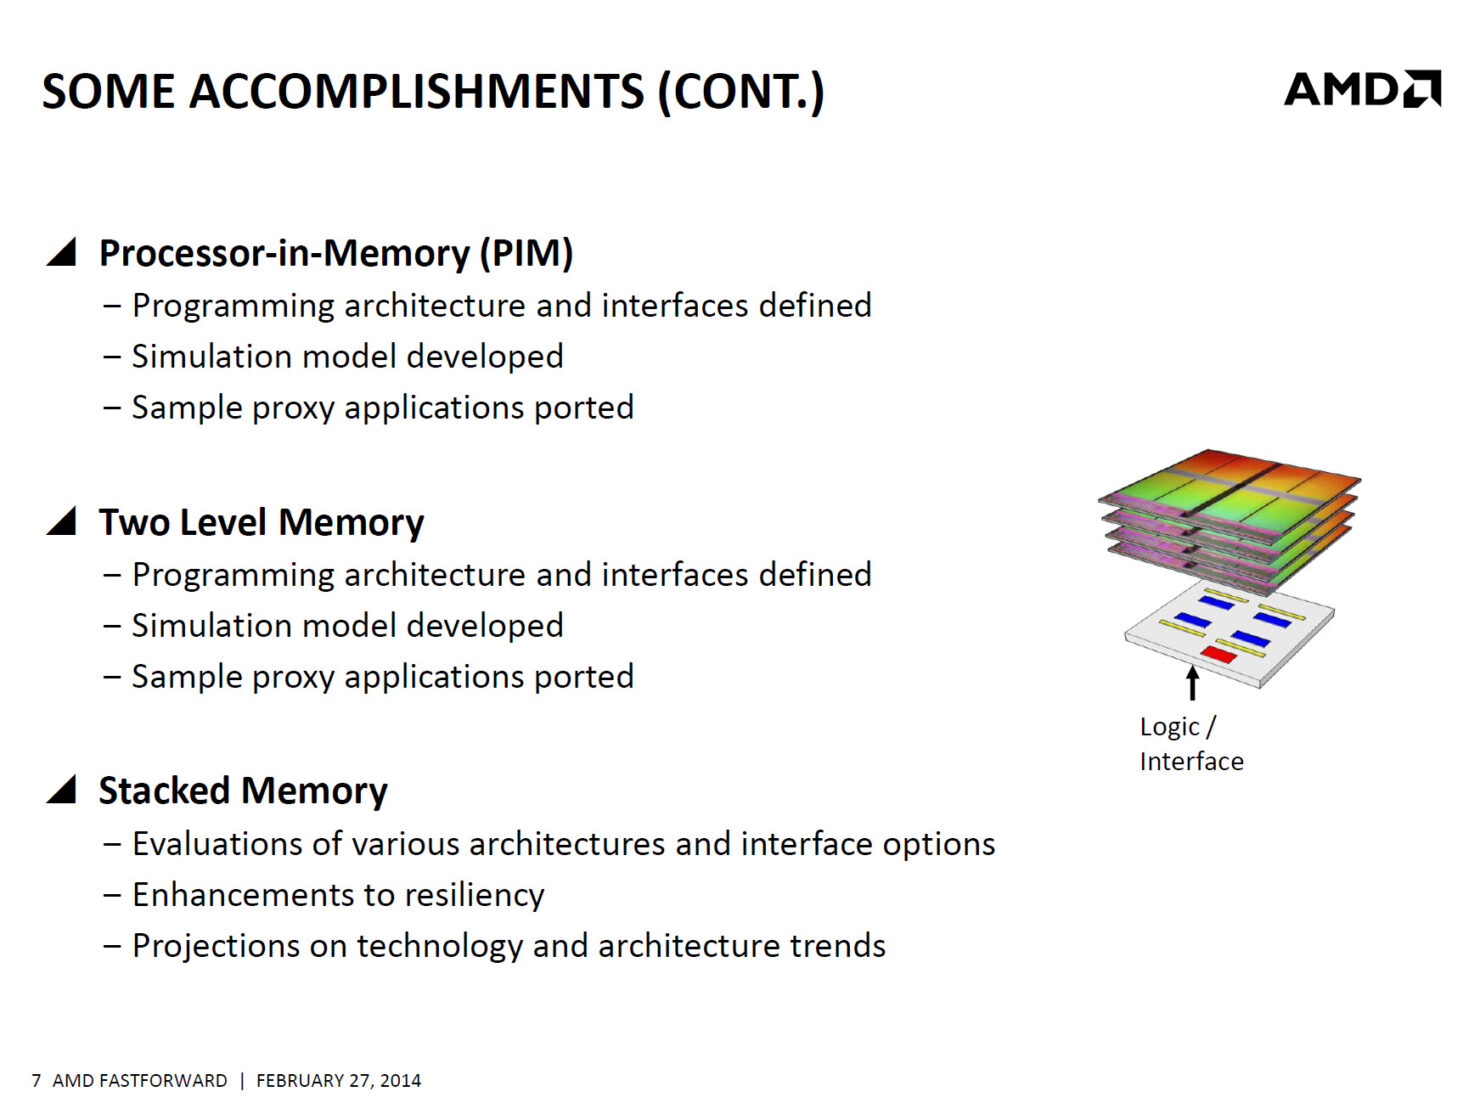 amd-apu-memory-technology-stacked-two-level-2